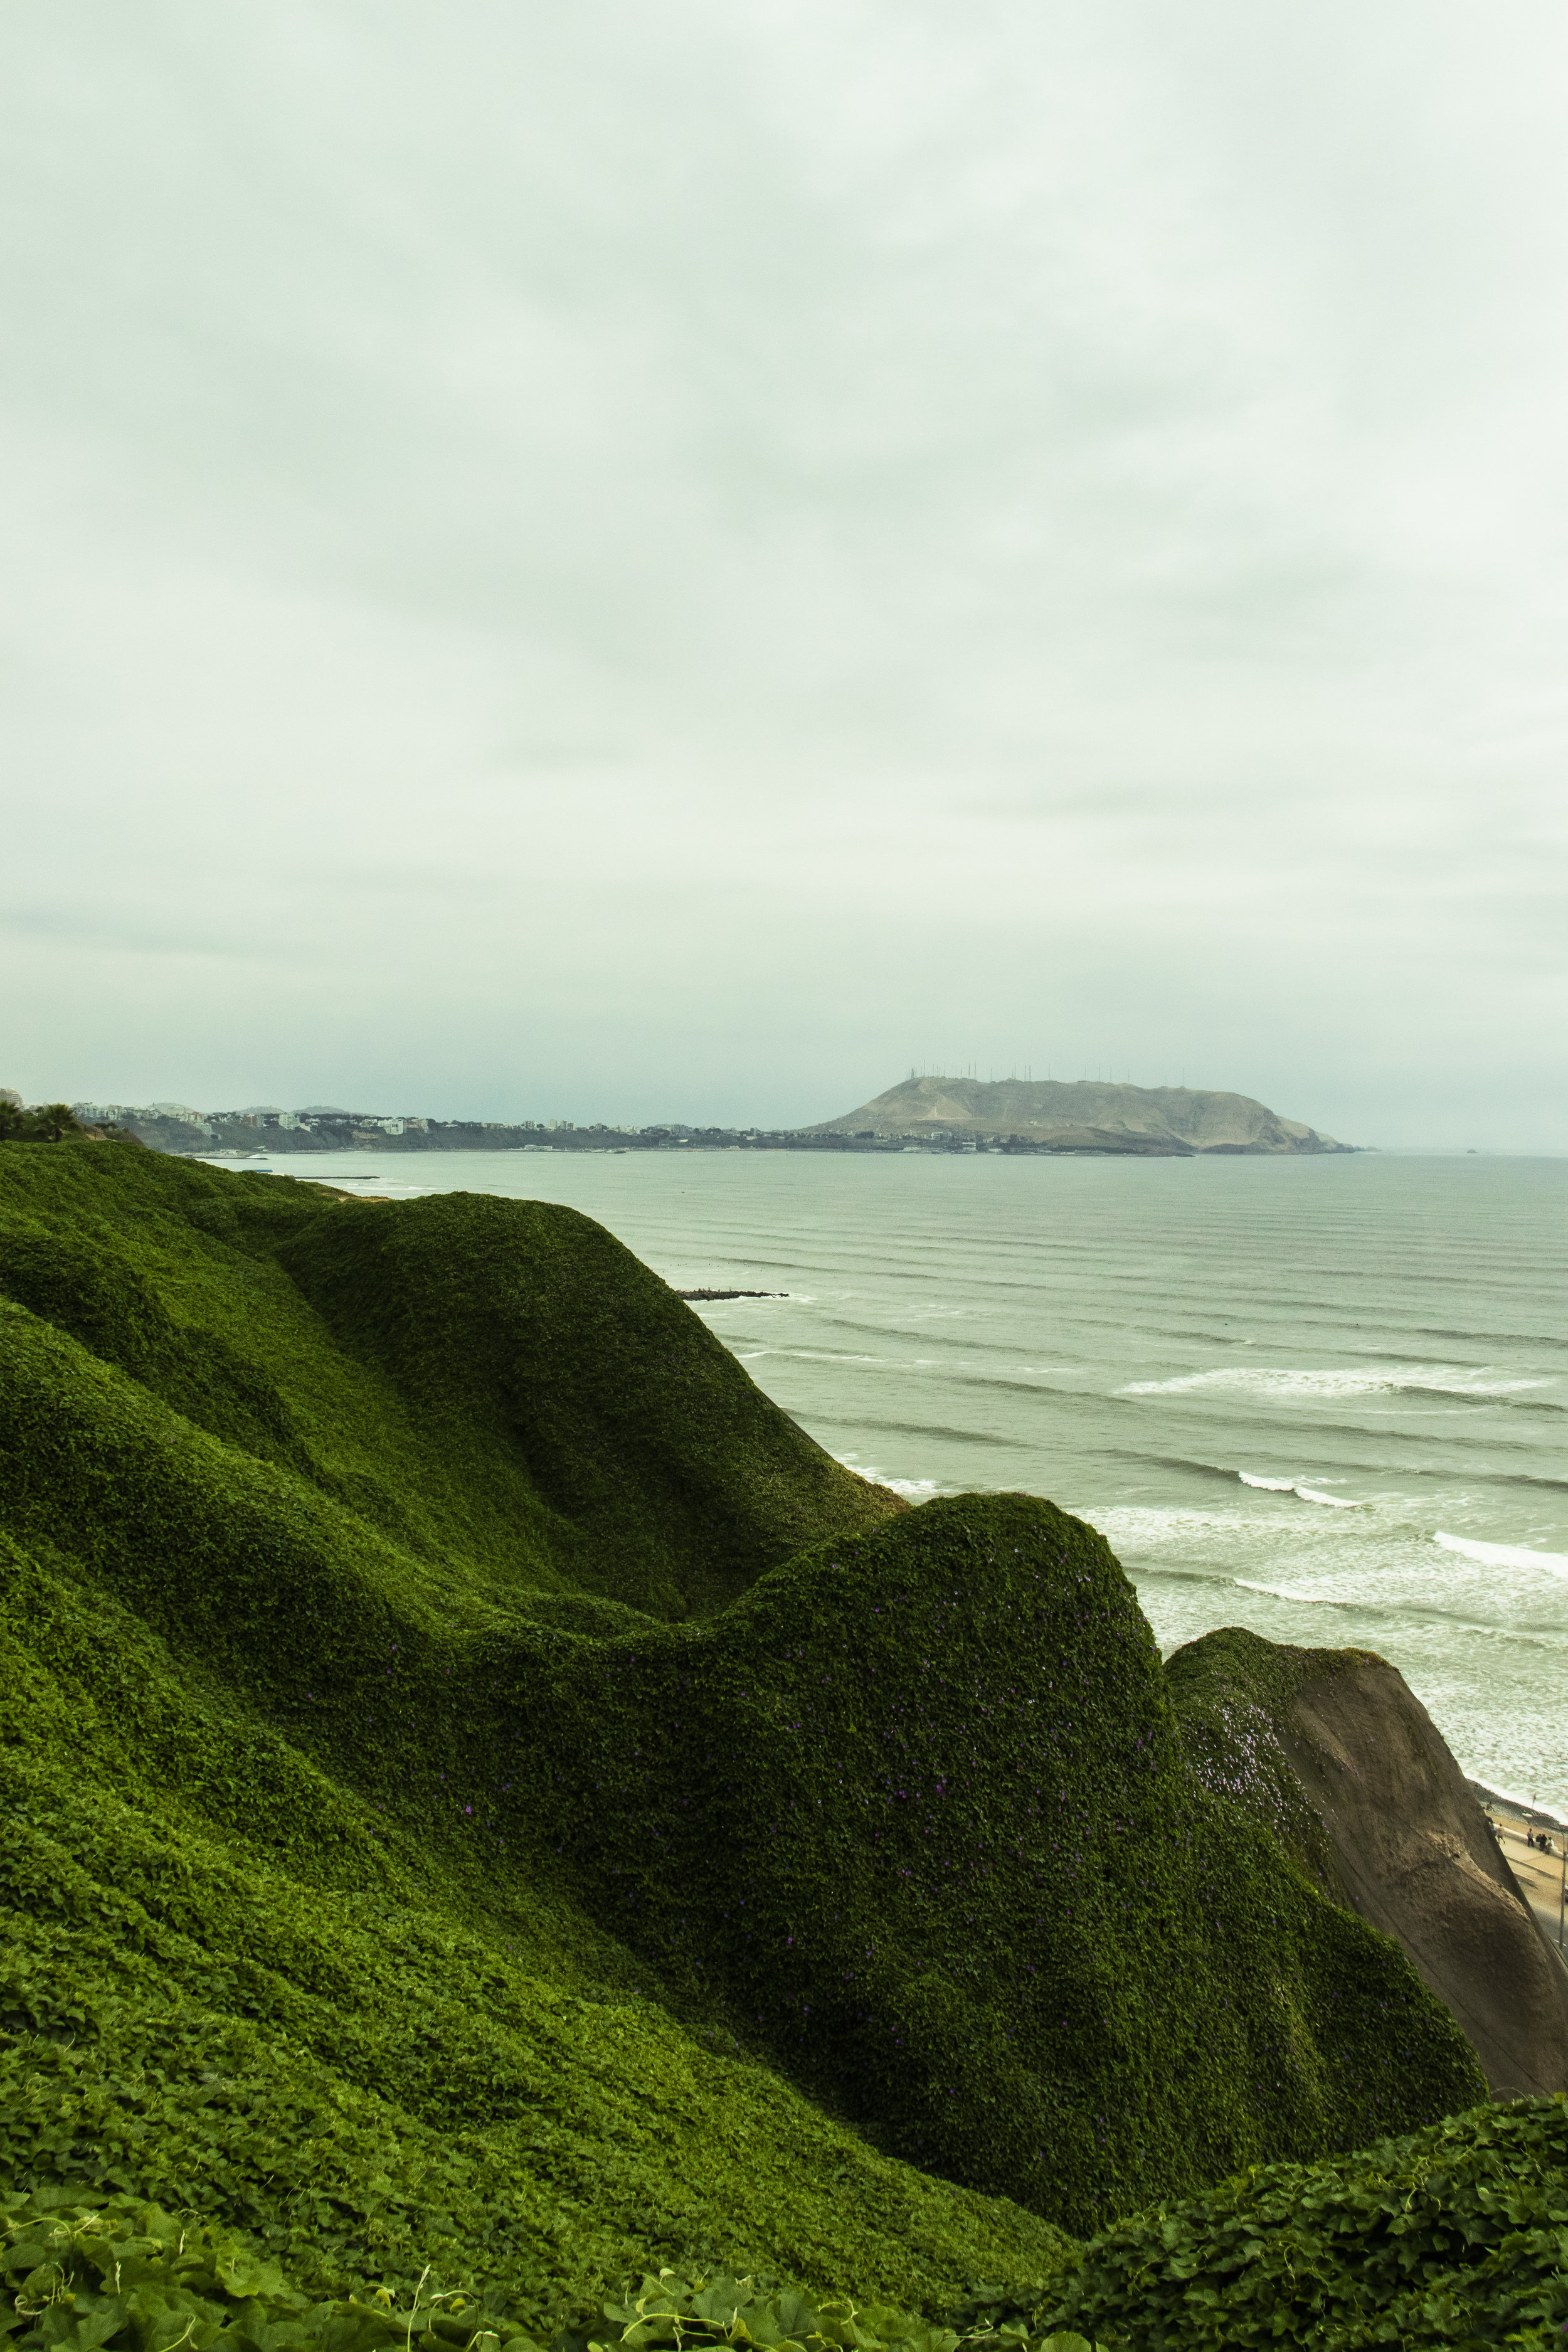 View from the top of the cliffs, overlooking the Pacific in Lima, Peru